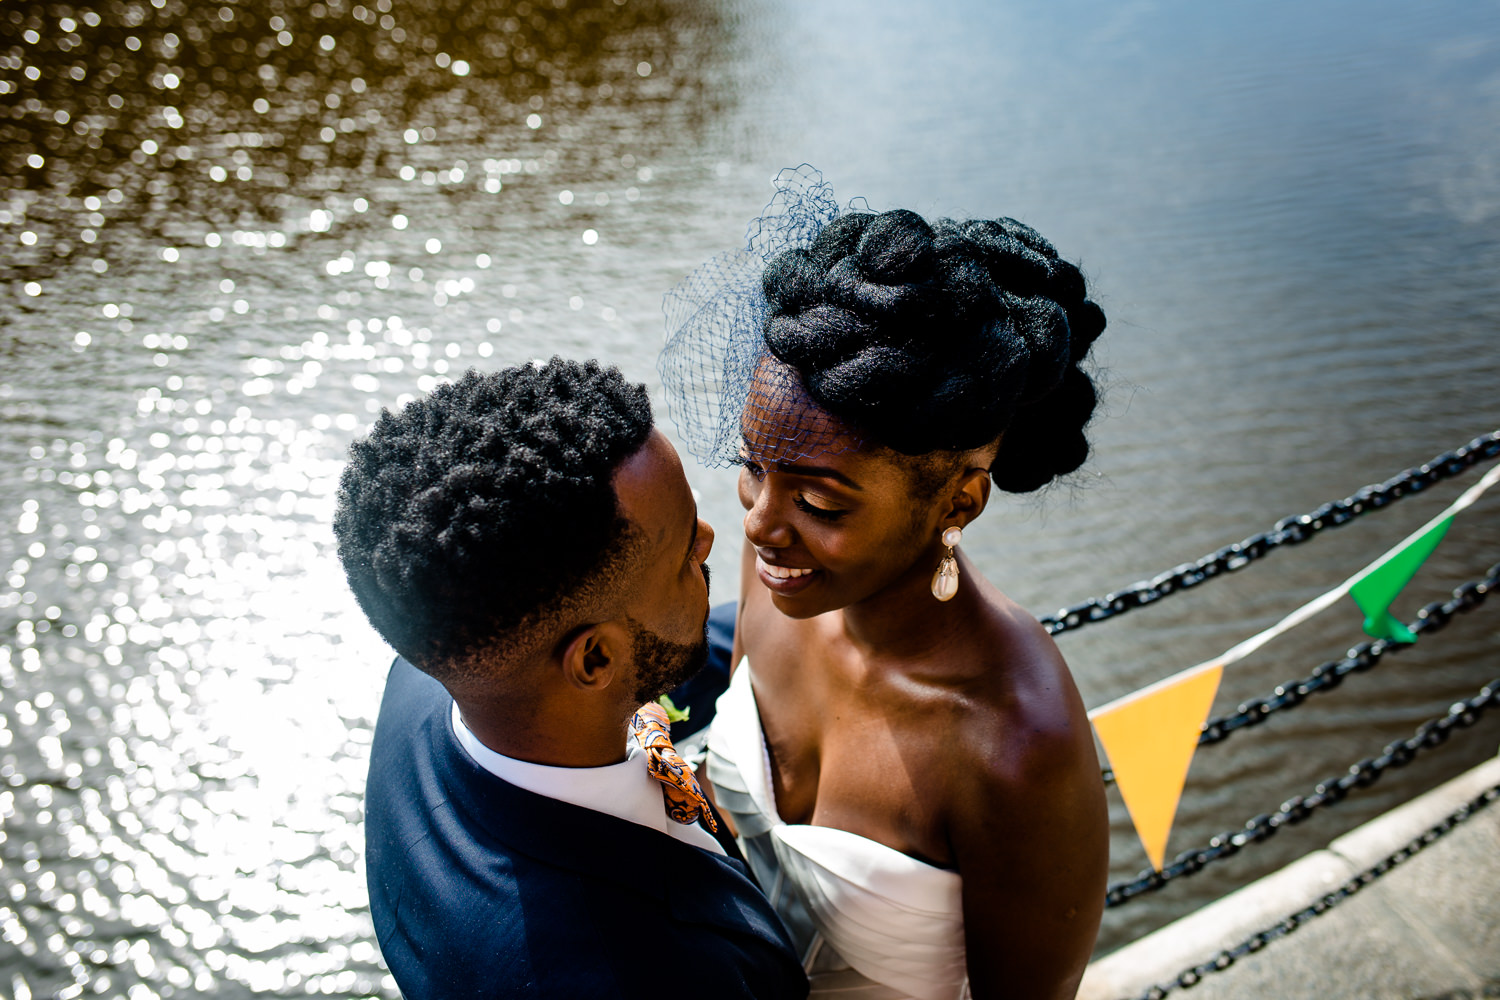 Liverpool wedding photography of a bride and groom at the dockside.